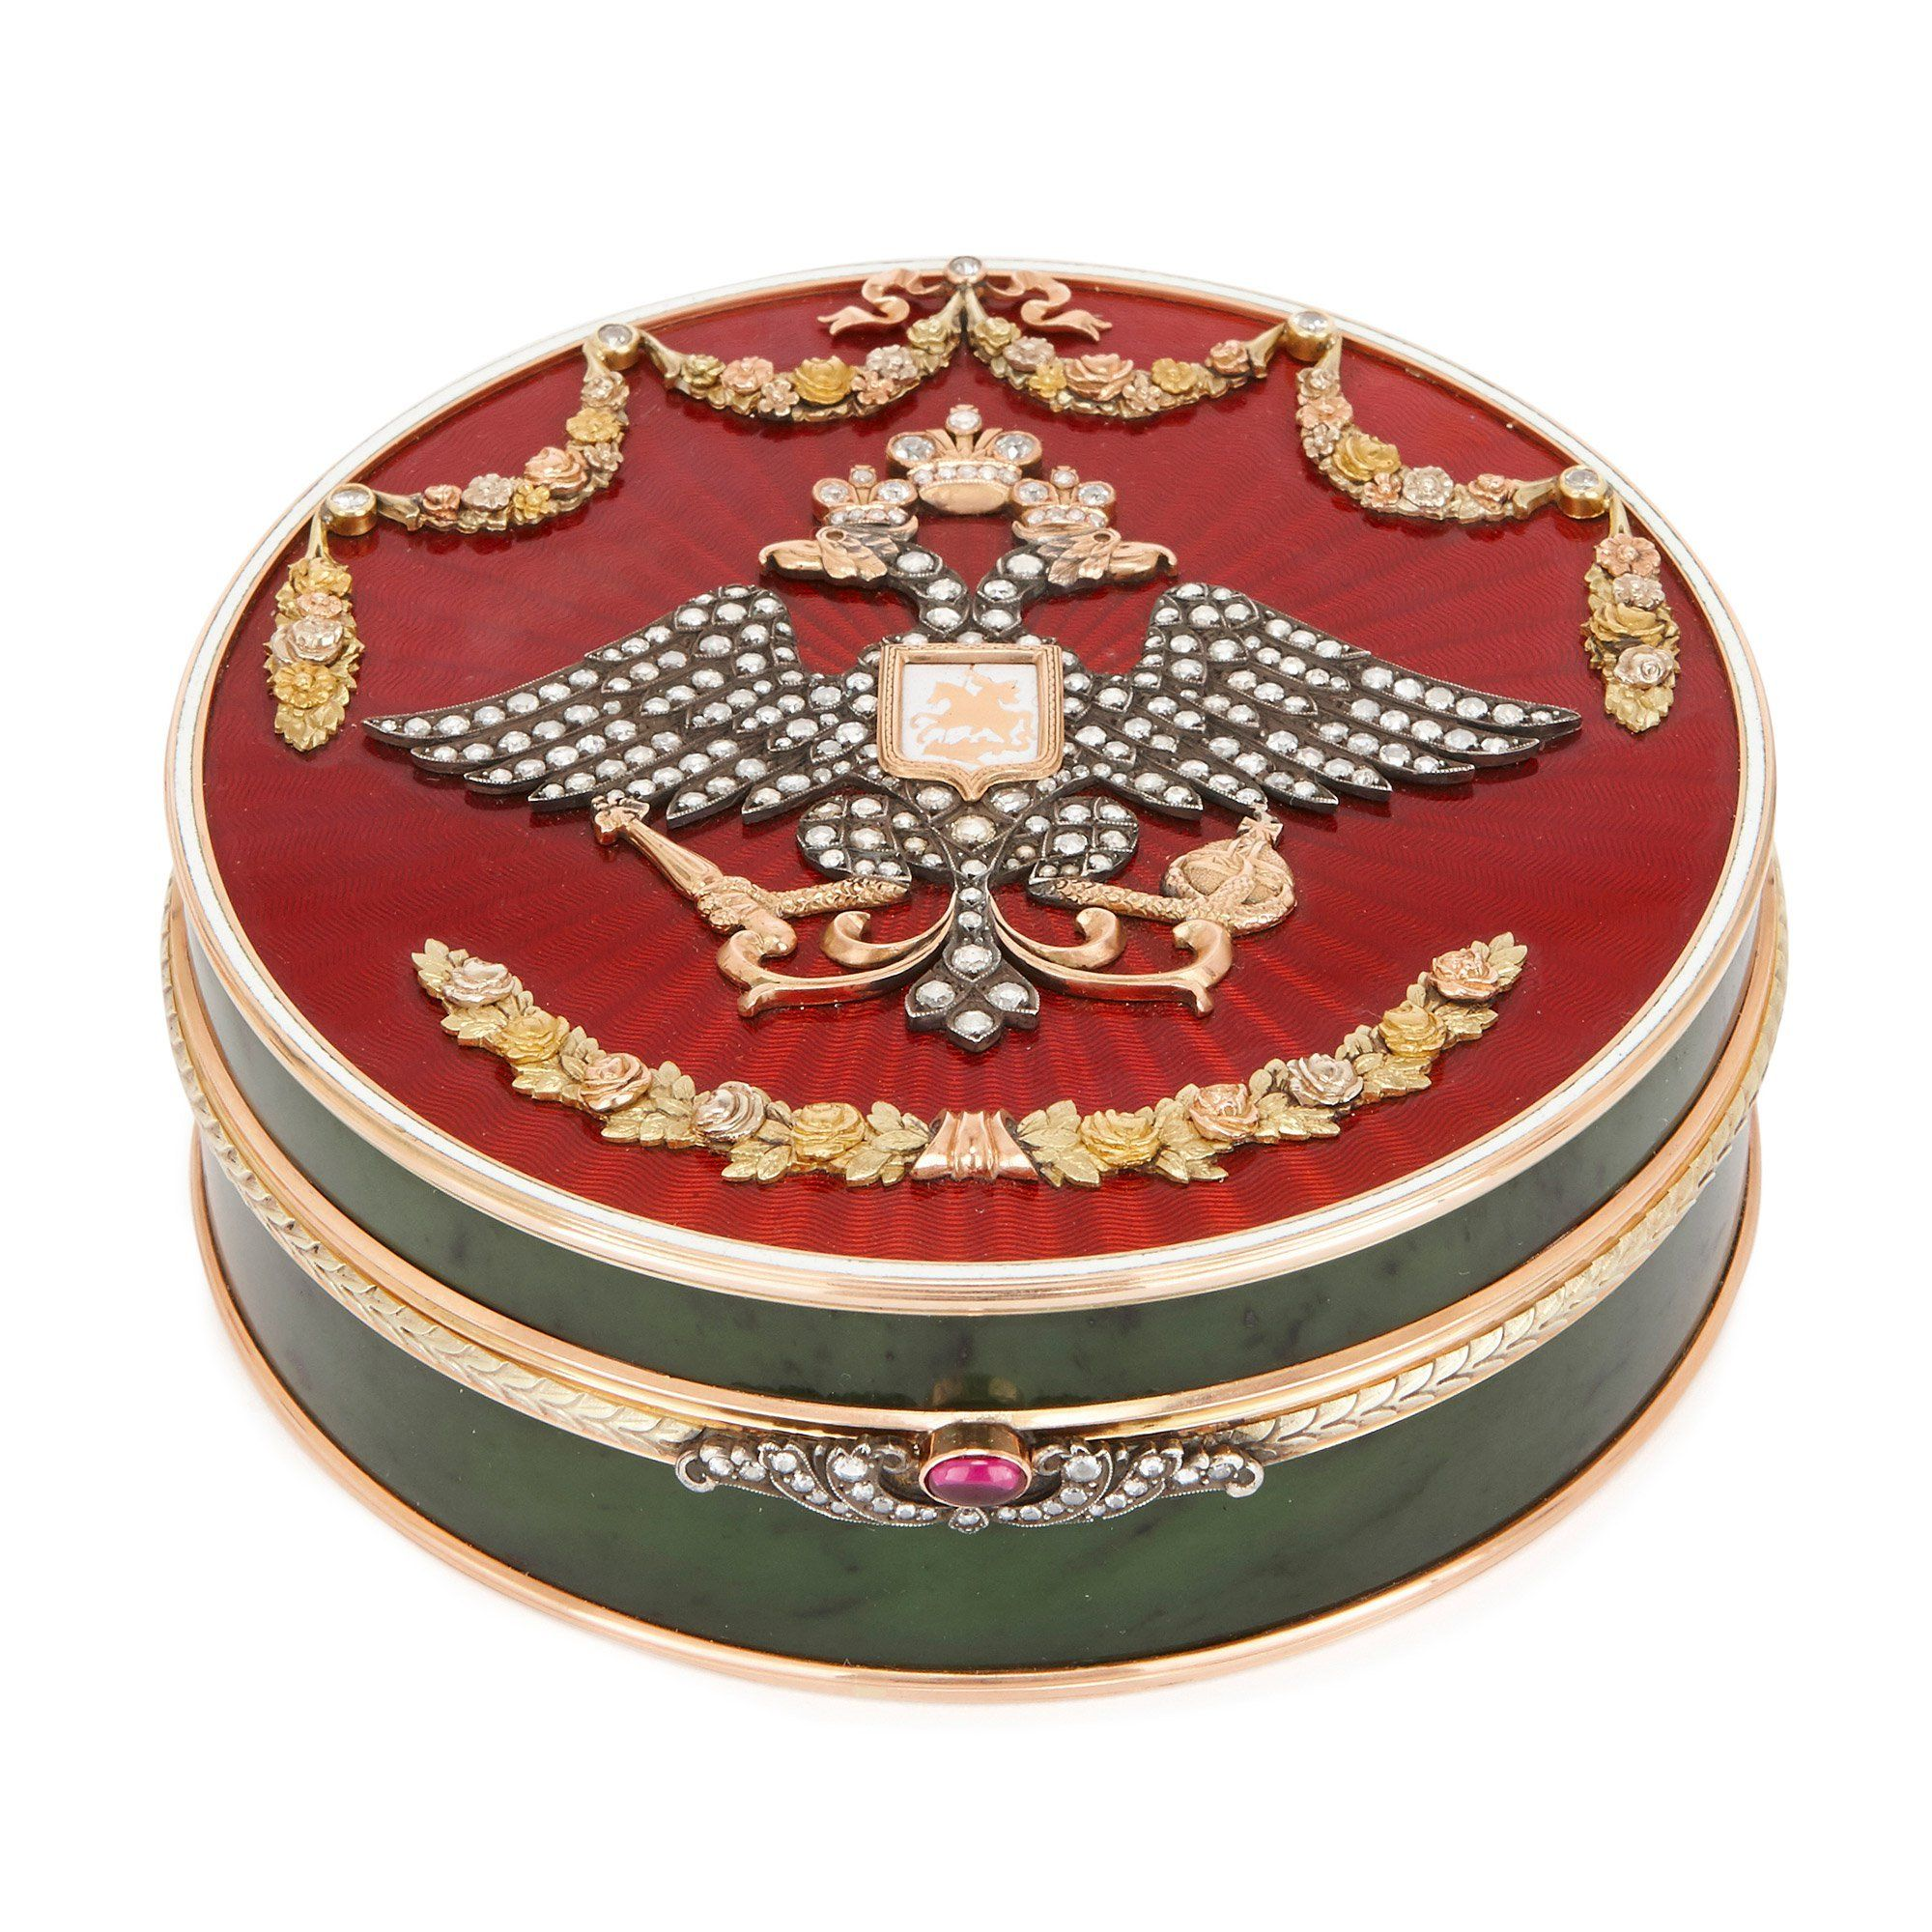 Faberge Style Gold Nephrite Diamond And Enamel Box Mayfair Gallery